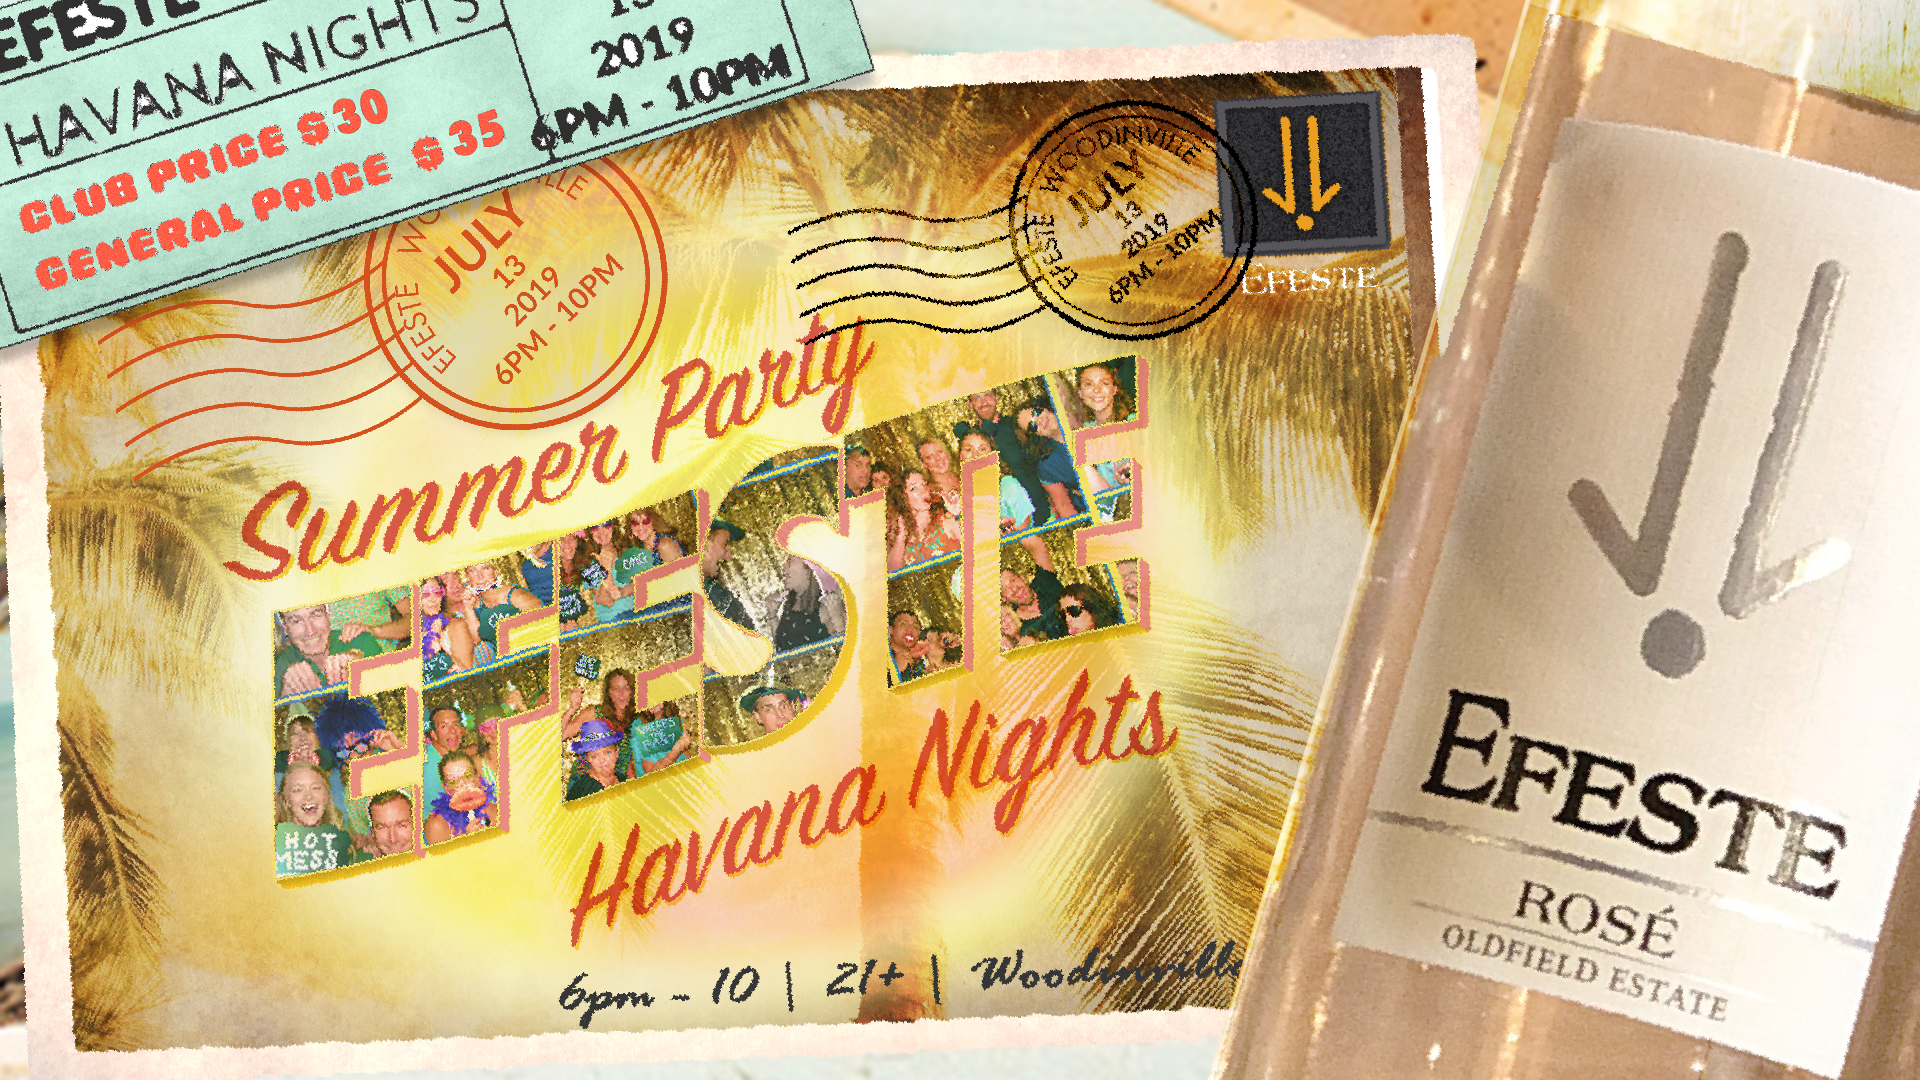 summerpartybanner.png